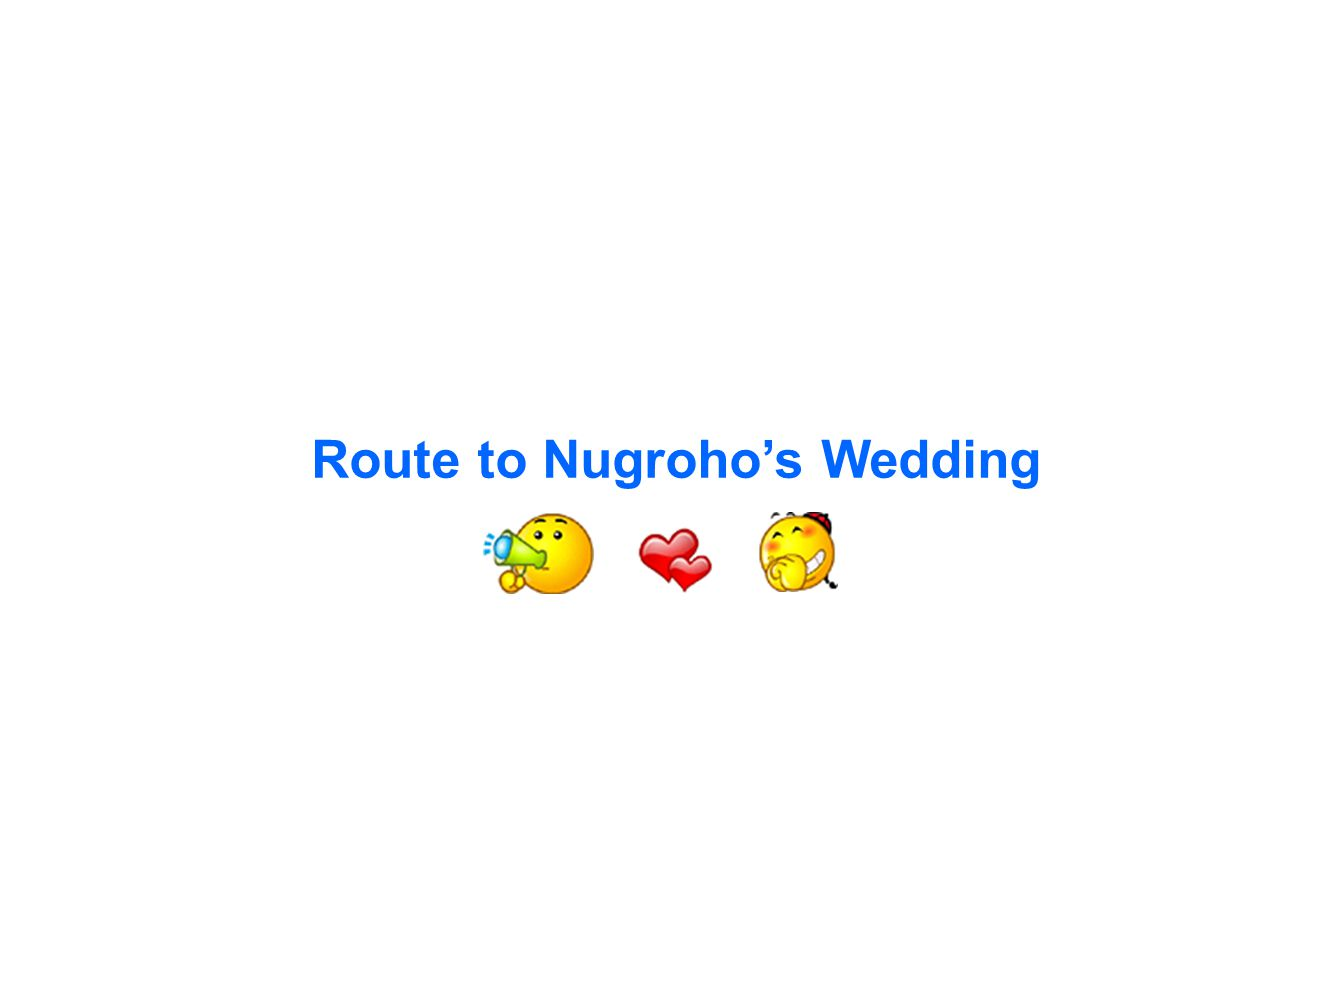 Route to Nugroho's Wedding